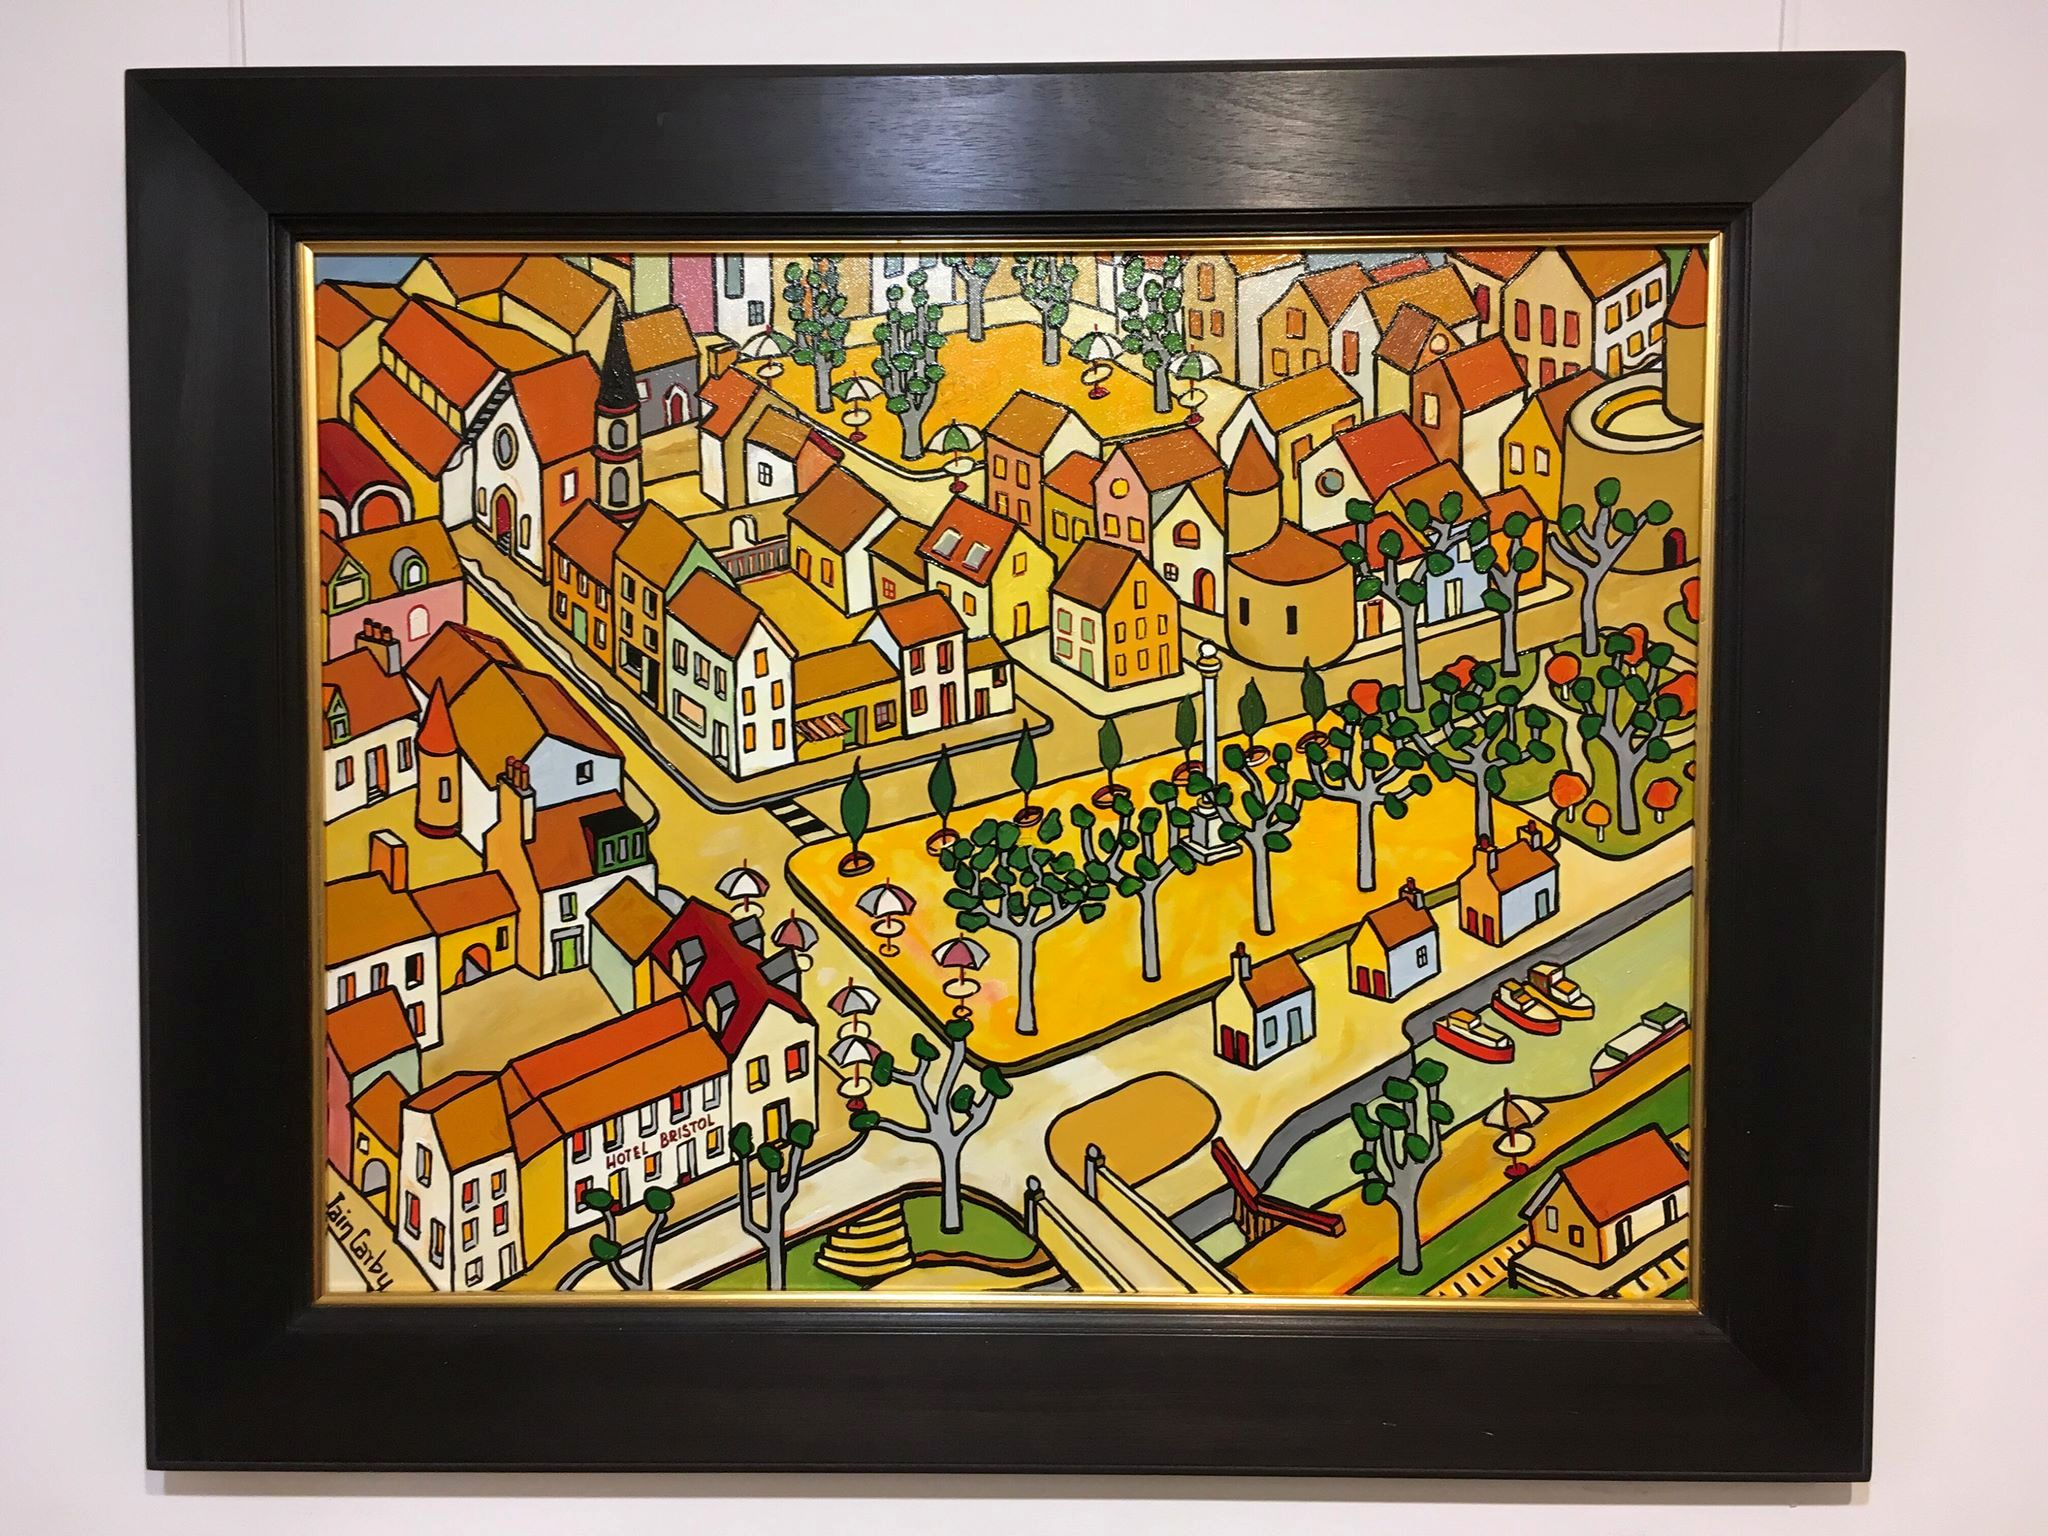 'The Bristol Hotel - Carcassone' by artist Iain Carby